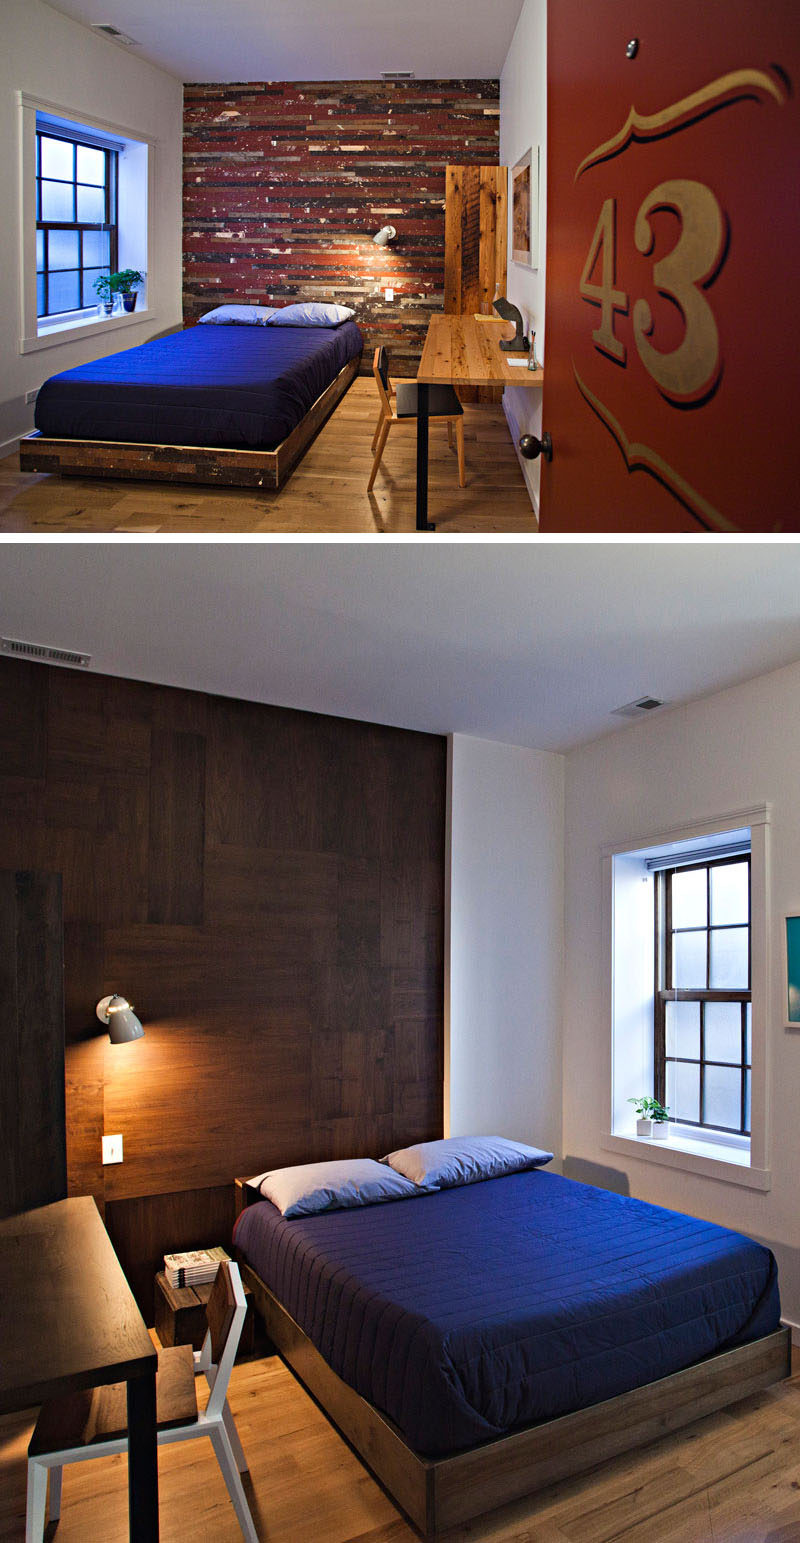 Interior Design Small Rooms: 8 Small Hotel Rooms That Maximize Their Tiny Space